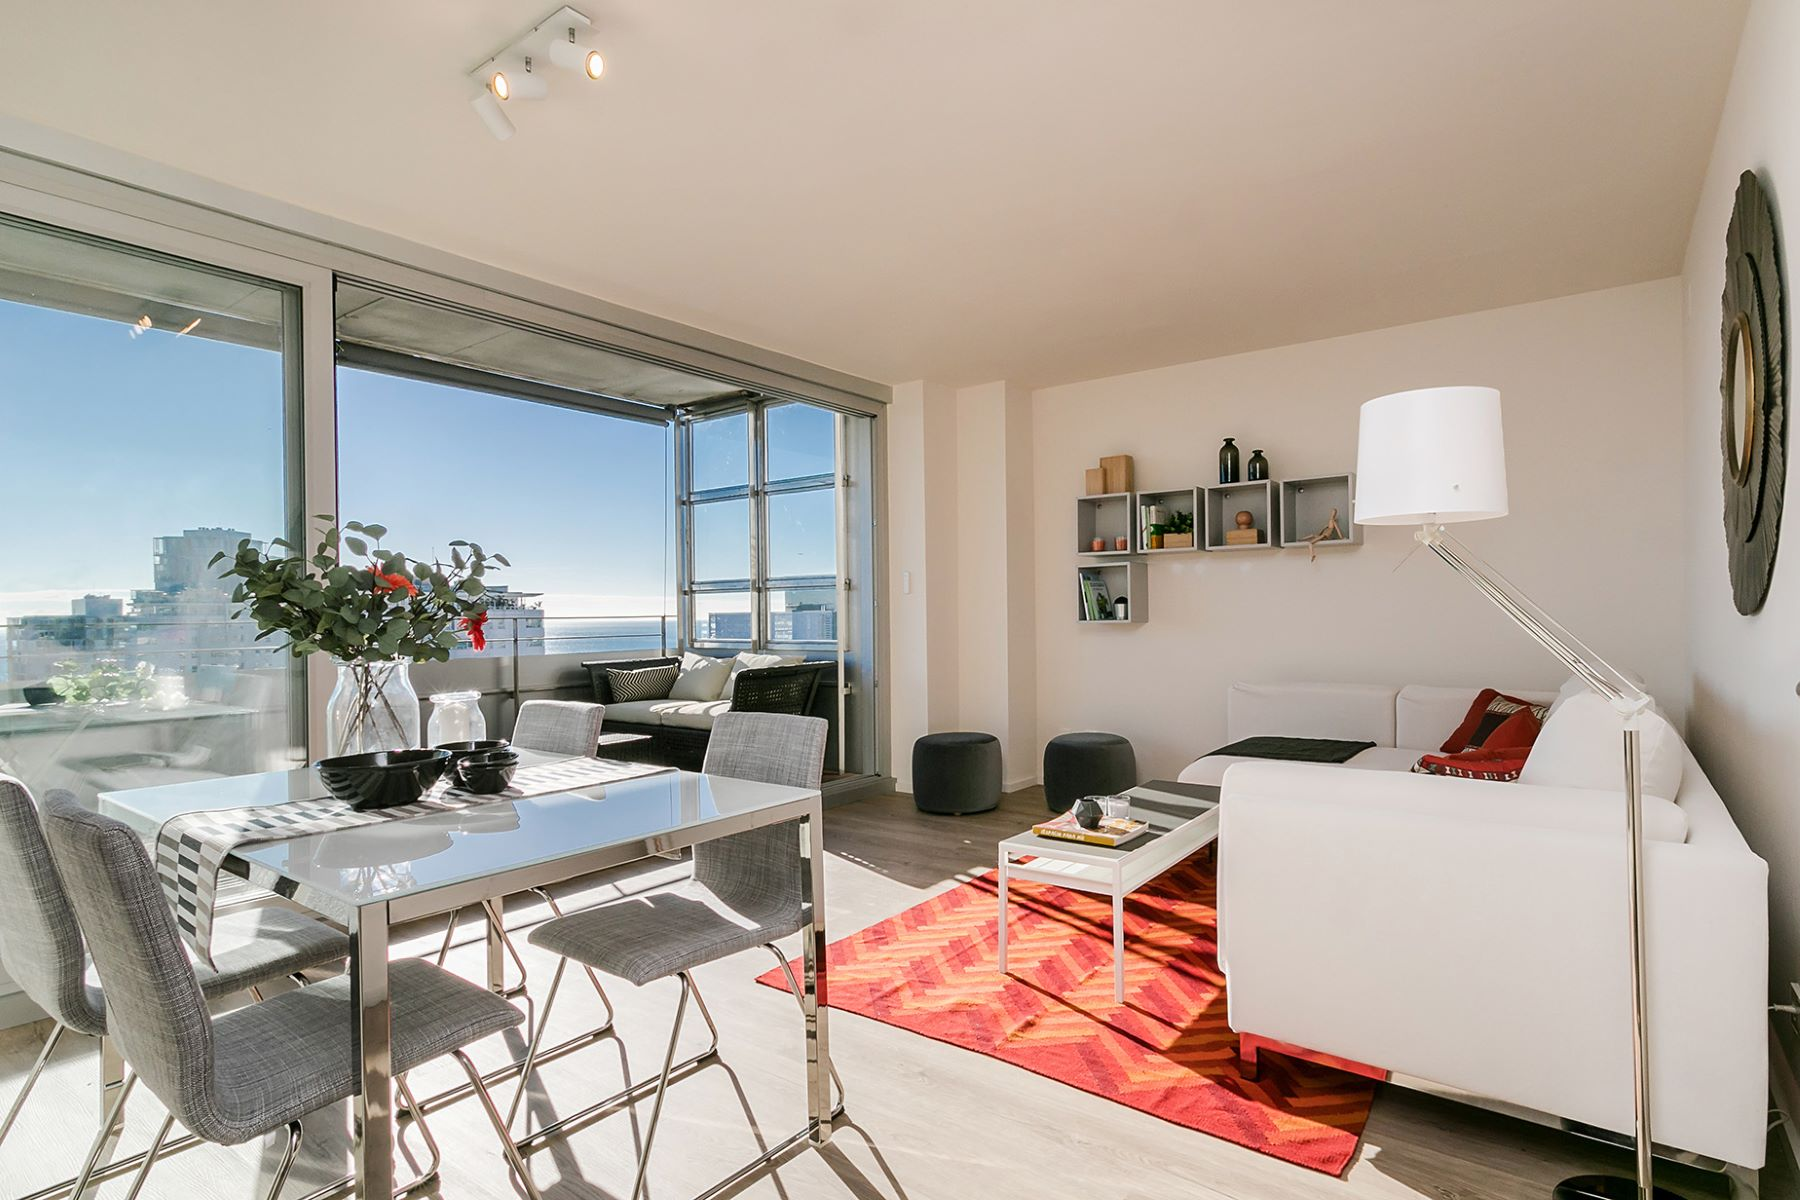 Apartment for Sale at Excellent apartment with sea views Barcelona City, Barcelona, 08019 Spain